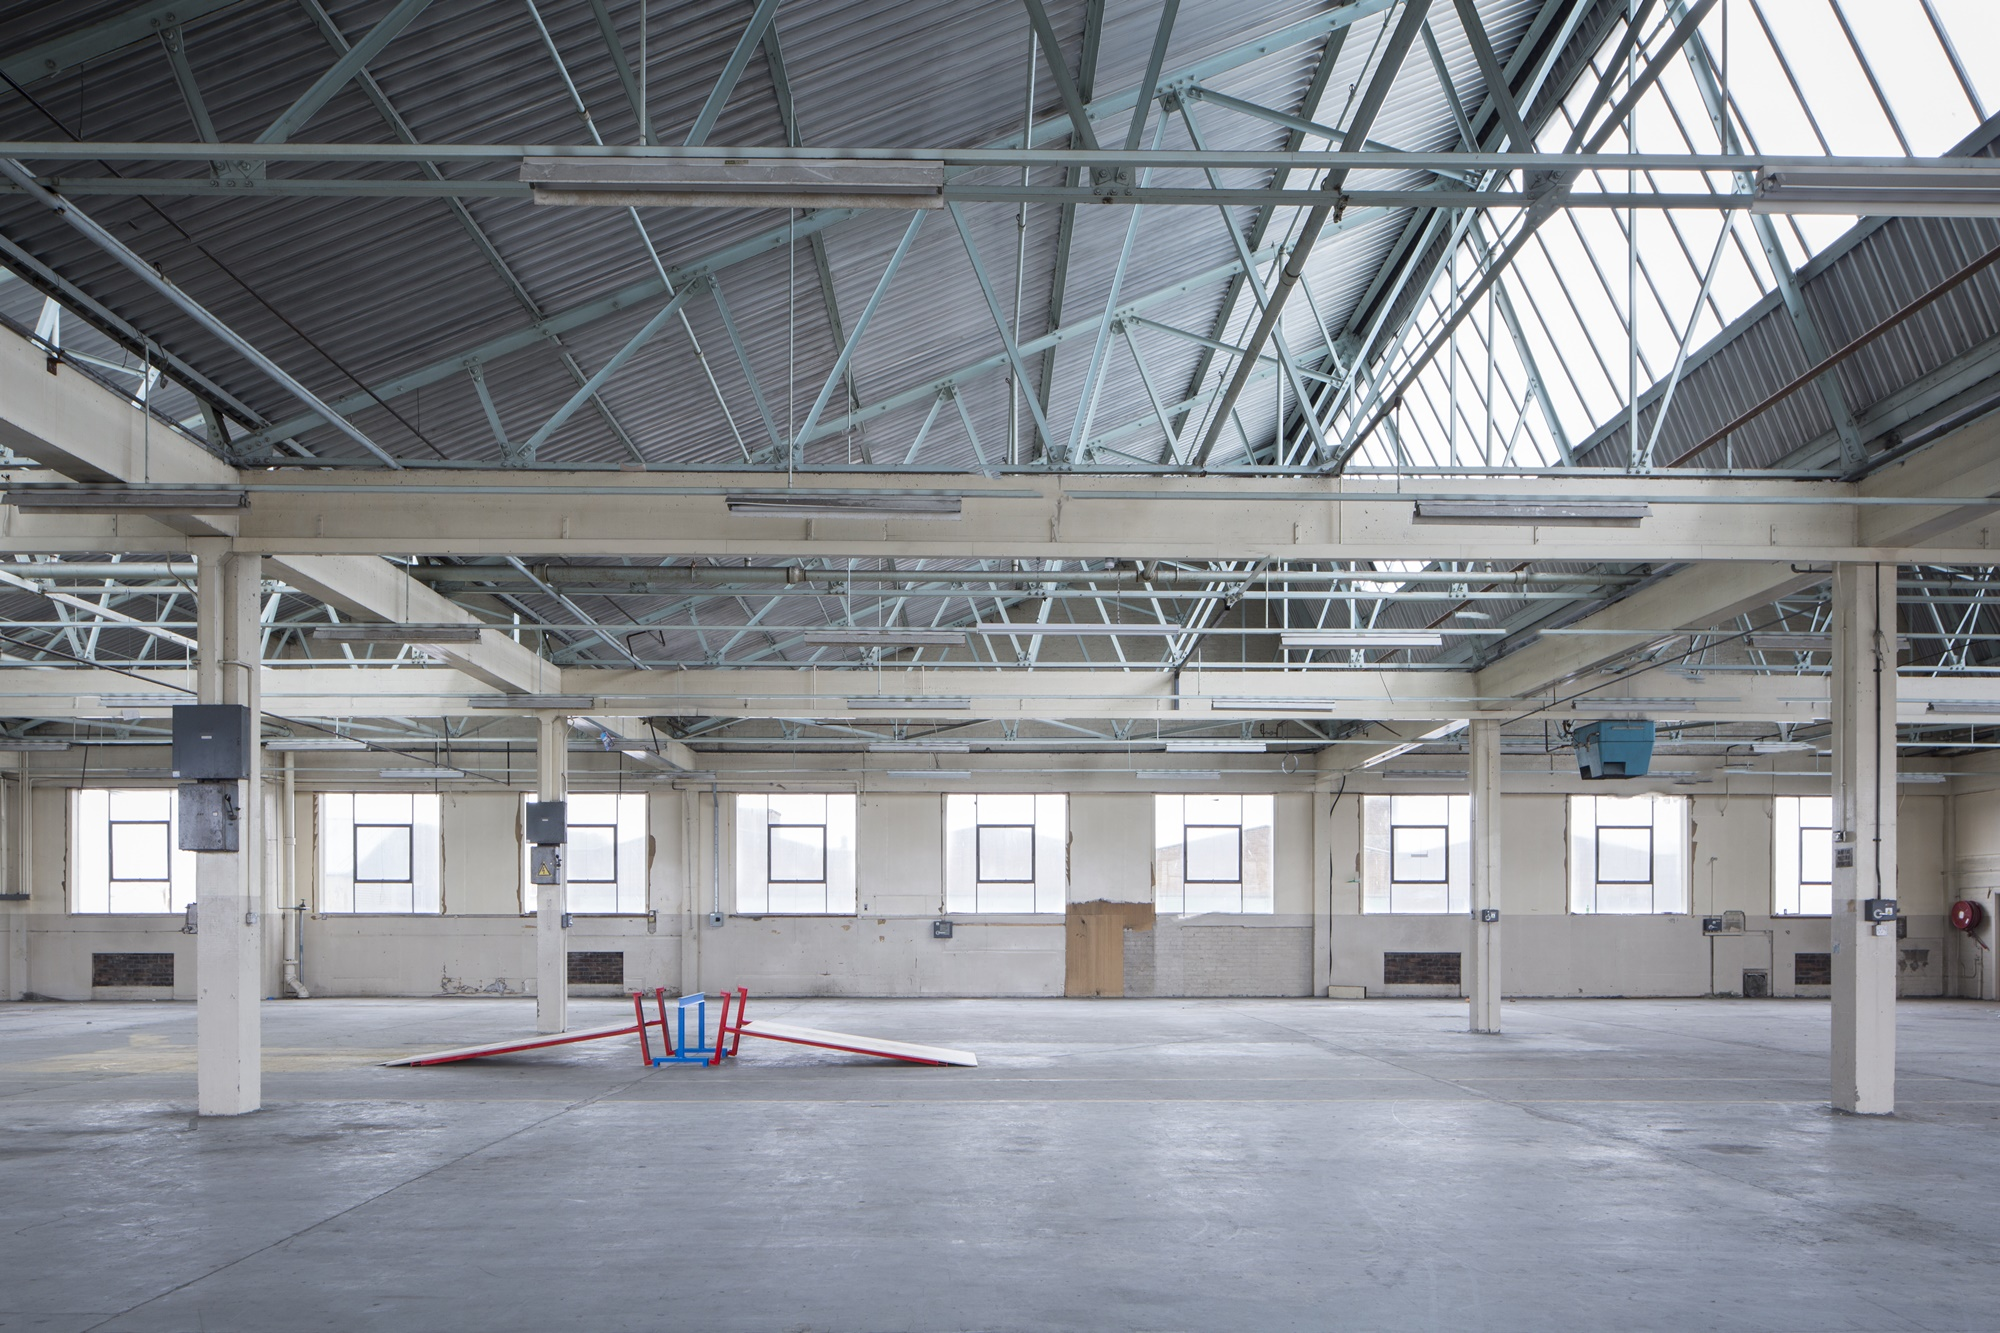 West ward works - Opened for four days during the Dundee Design Festival 2017.Glasgow Architects McGinley Bell have prepared proposal for its renovation as an 'arts hub.' See full article here. Should this go forward, this could act as a catalyst for the regeneration of Miln Street and the surrounding area.